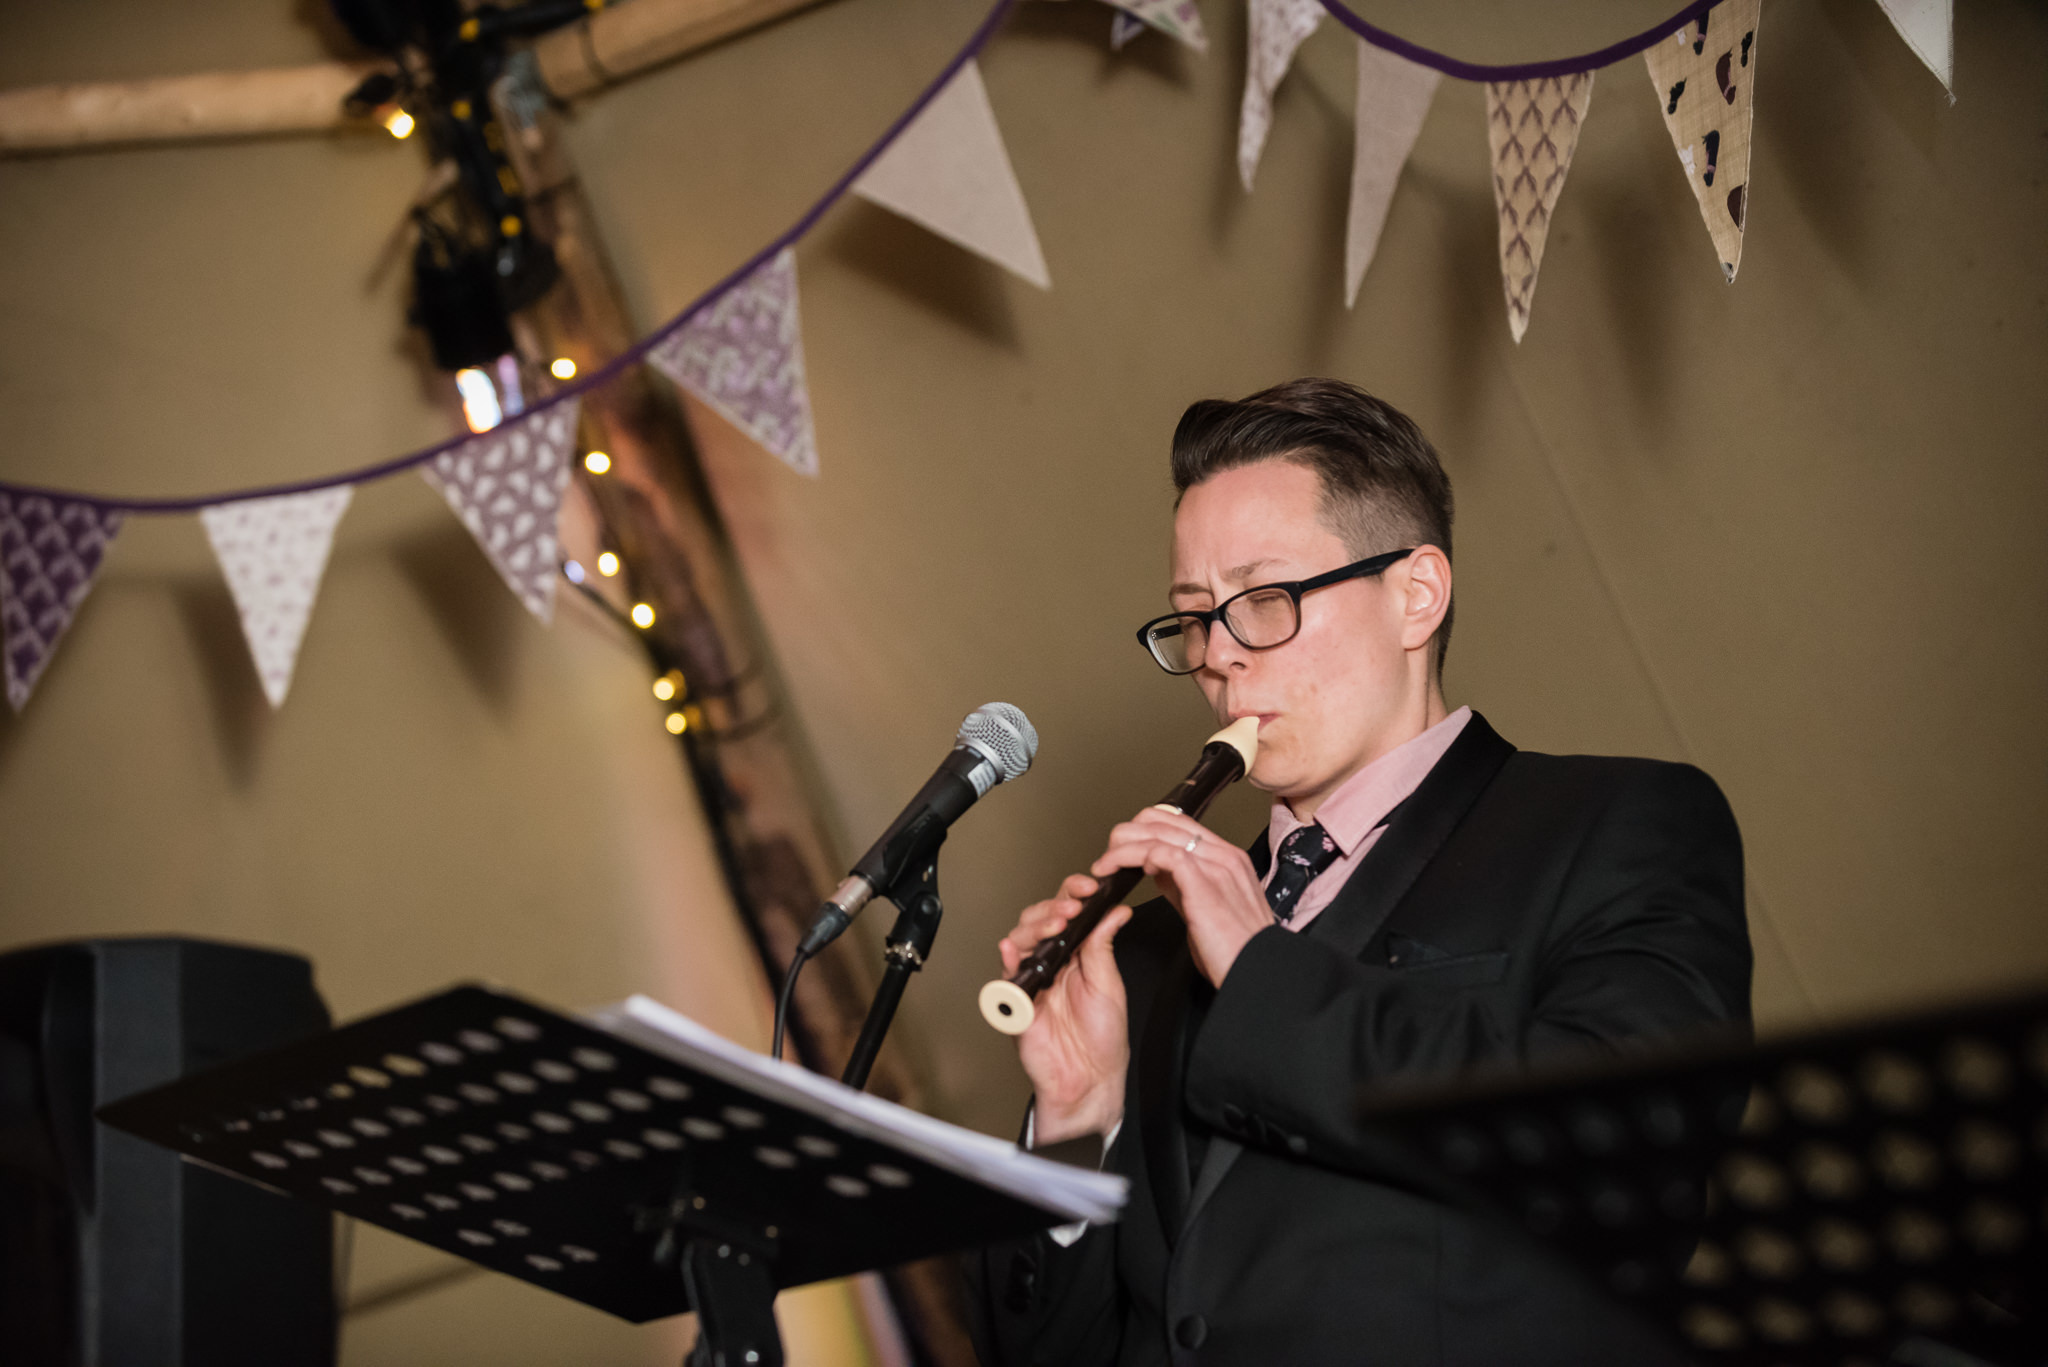 Guests perform at the wedding reception